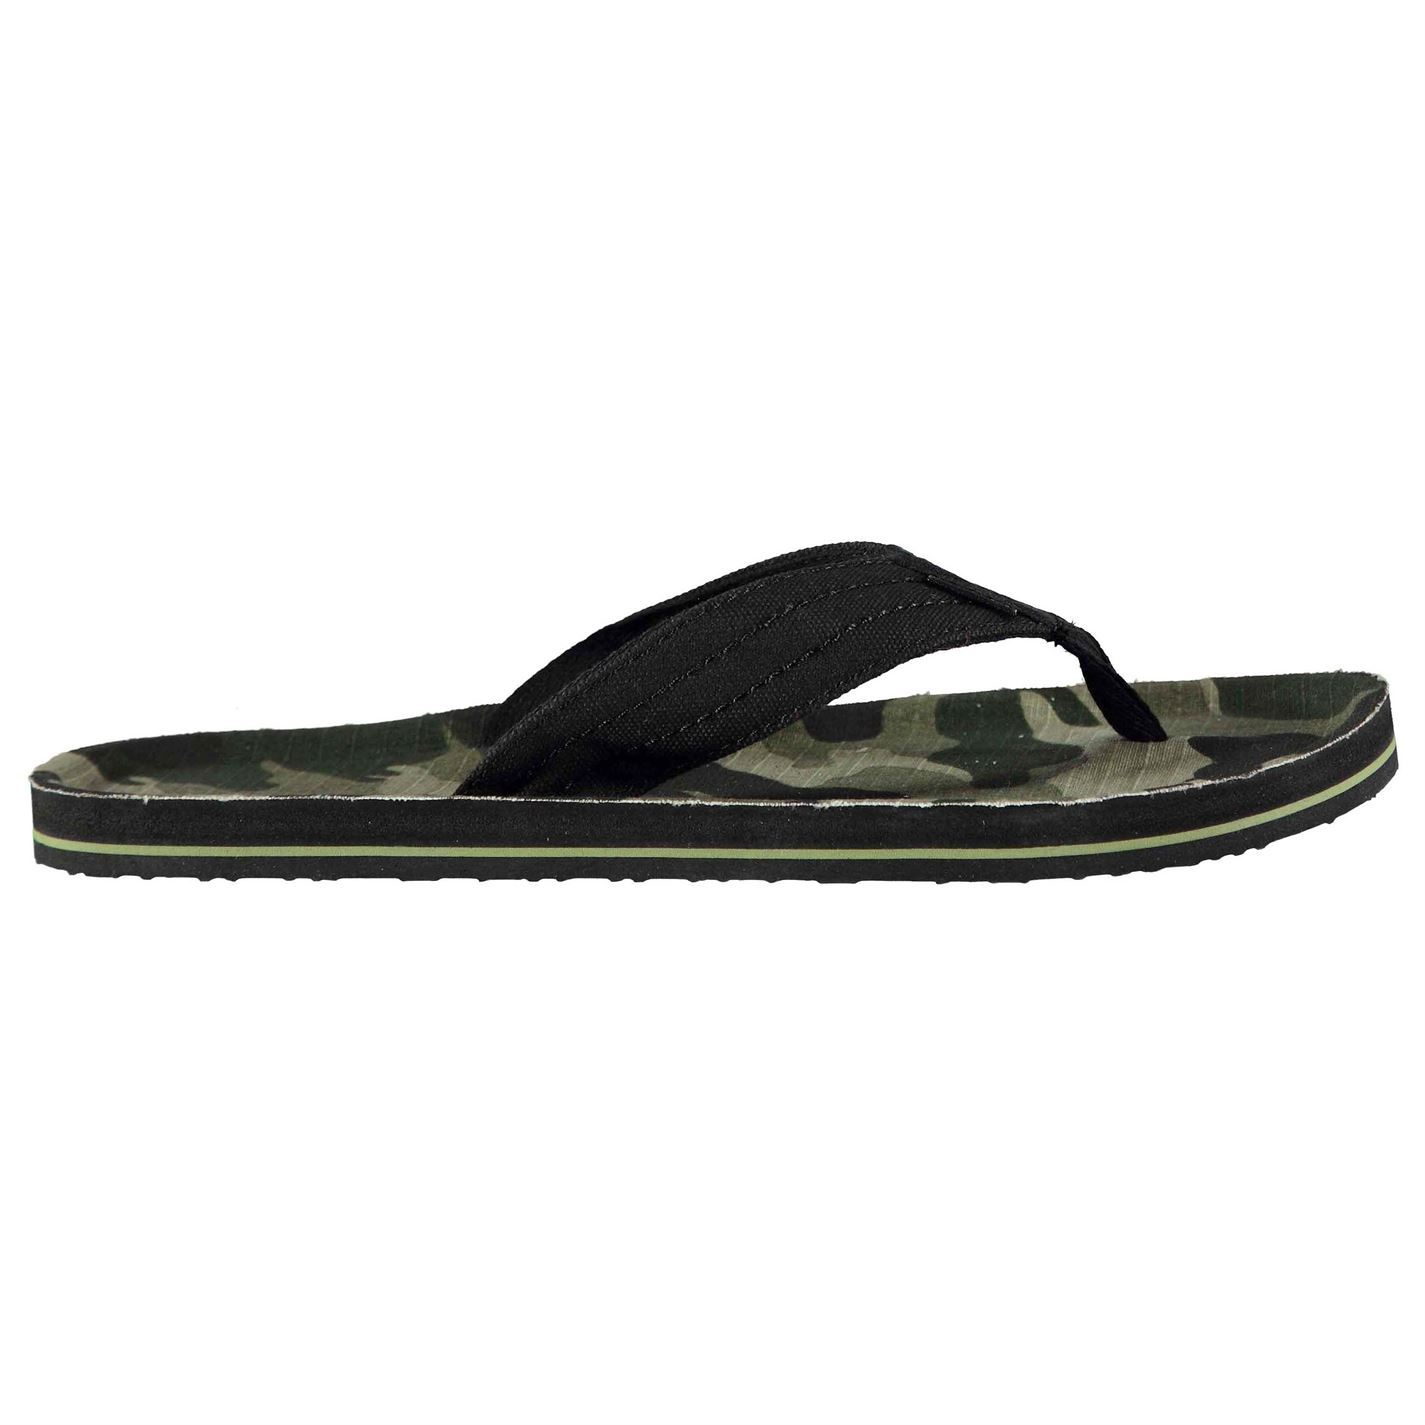 7dbbef2011ec Enjoy summer in style in the O Neill Flip Flops - crafted with a fabric  footstrap and toe post